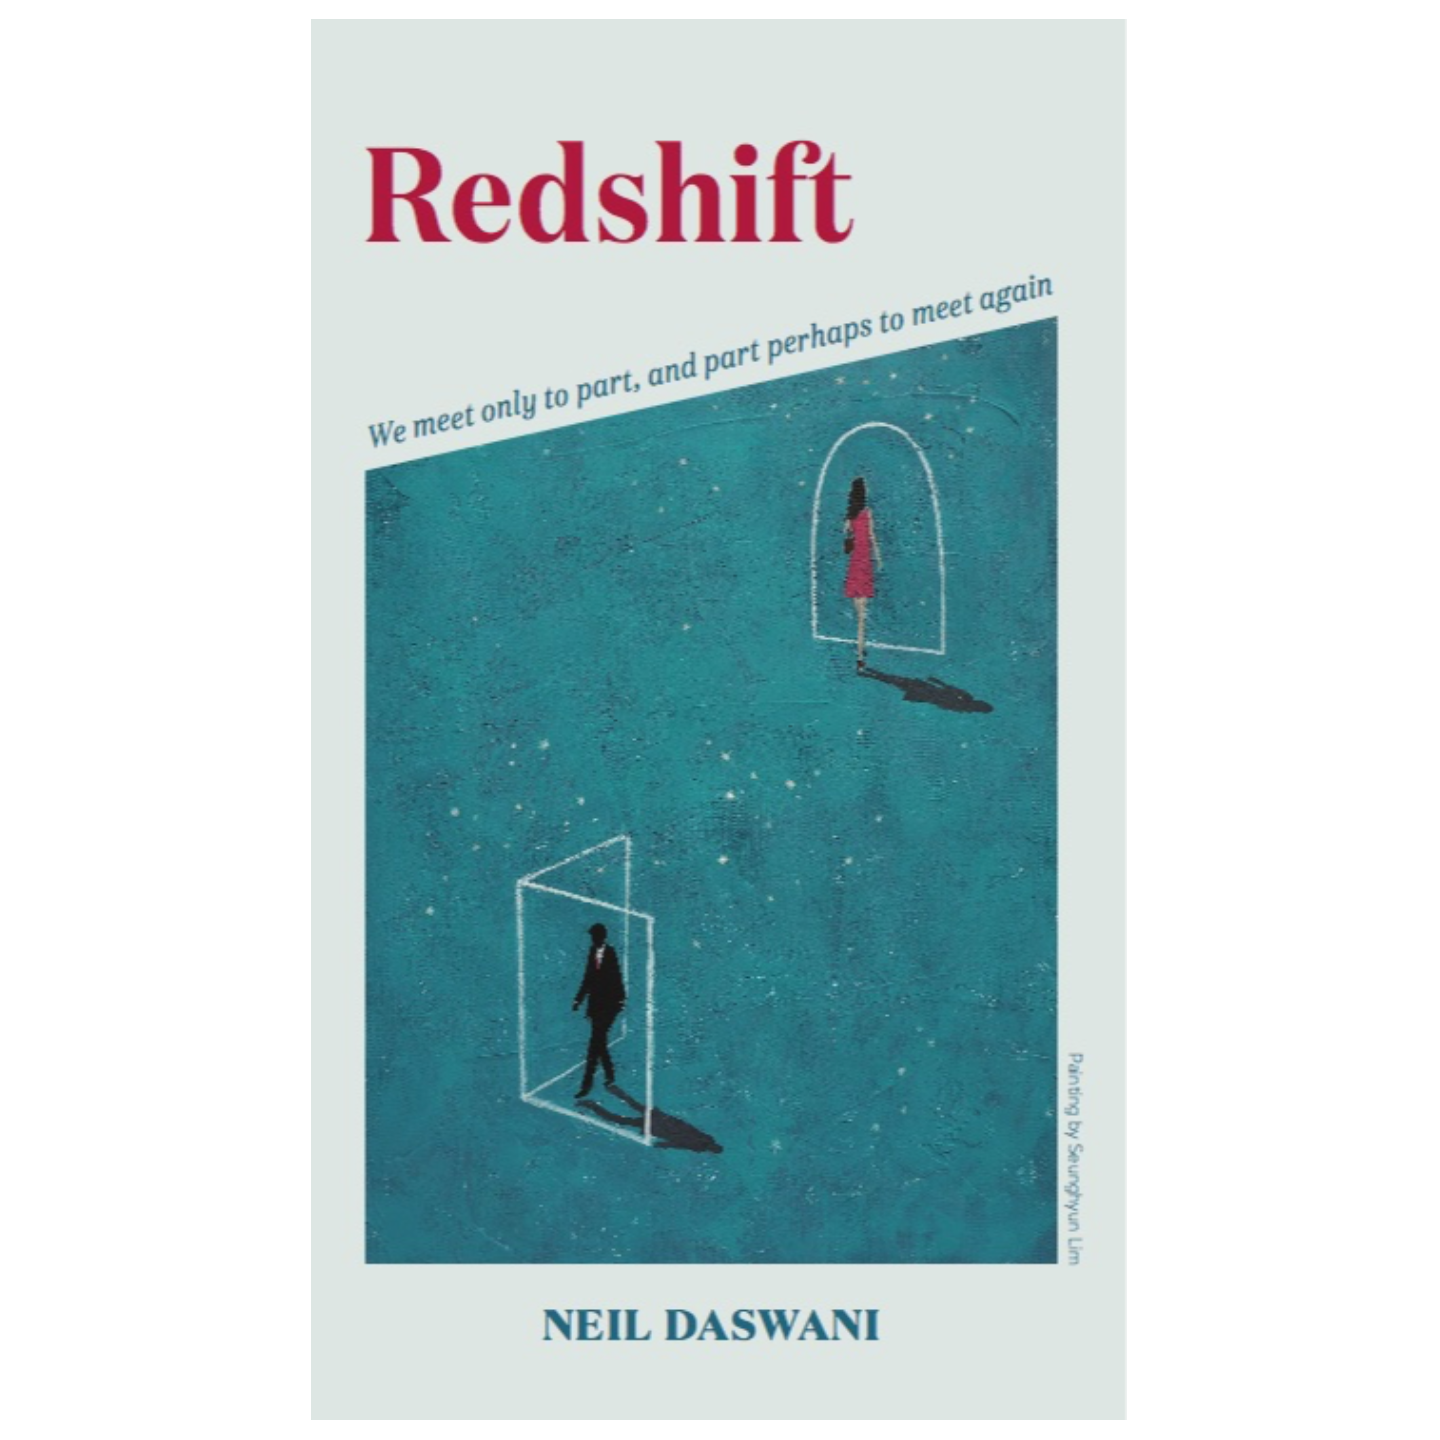 Redshift by Neil Daswani